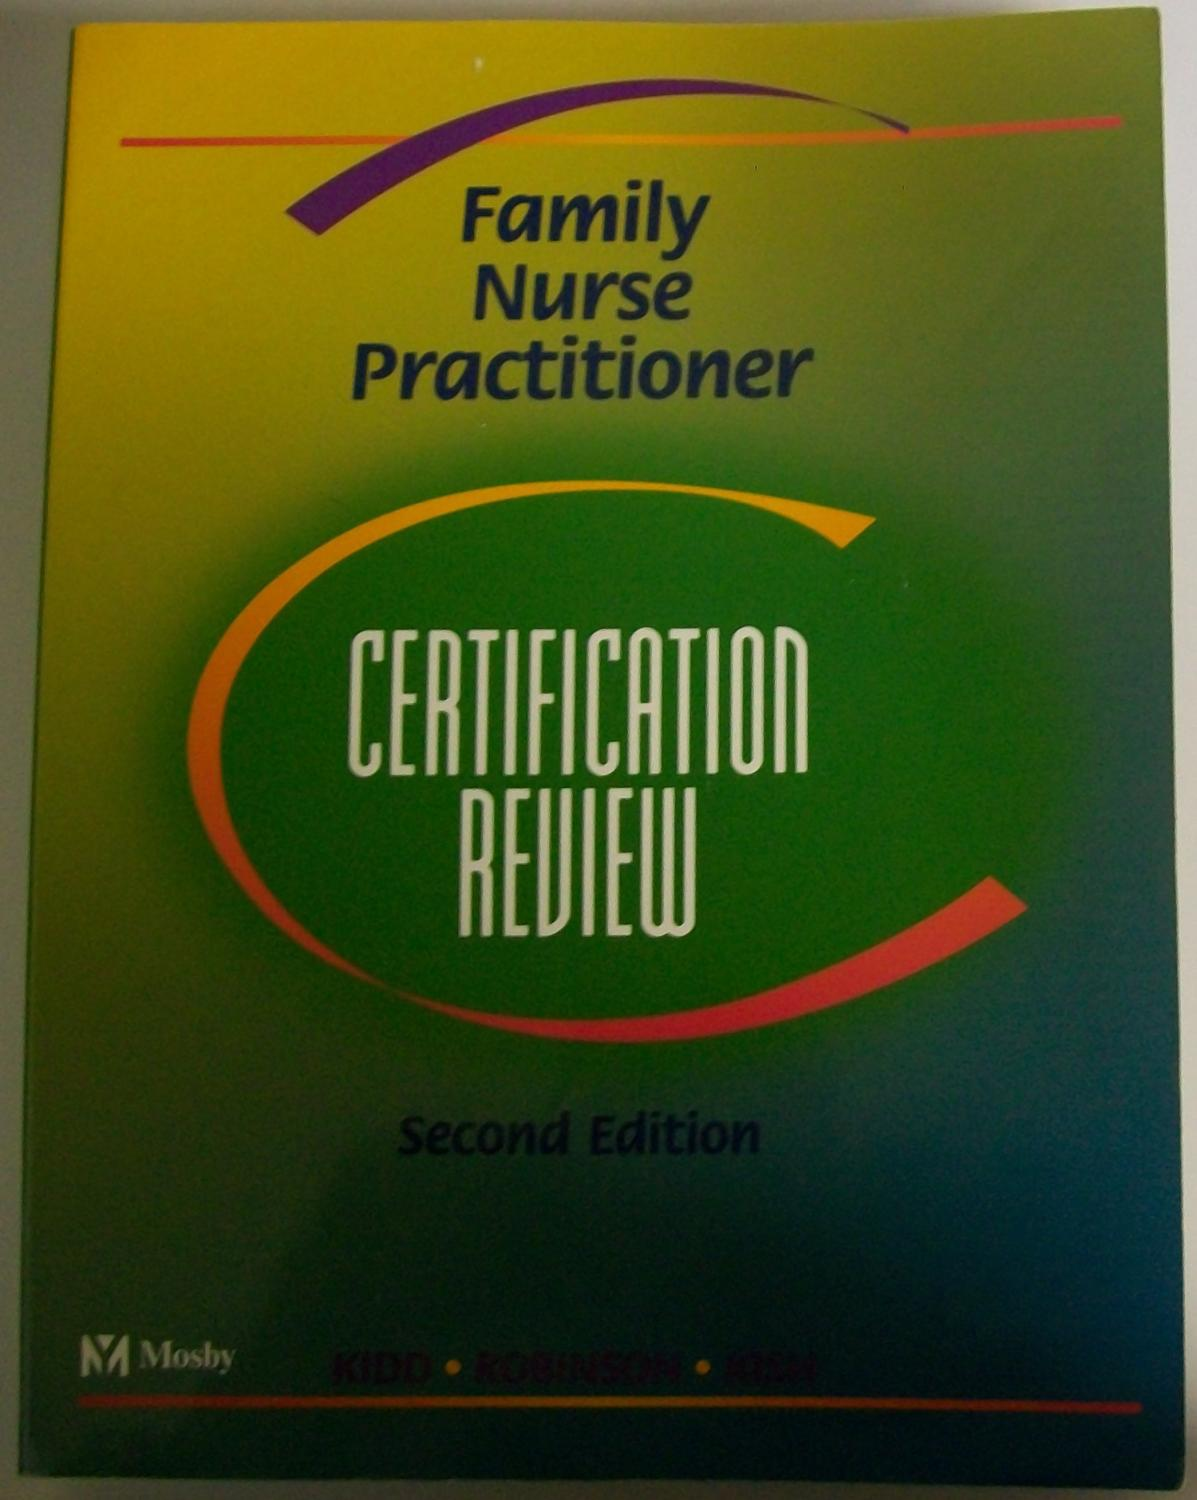 Family Nurse Practitioner Certification Review Second Edition With